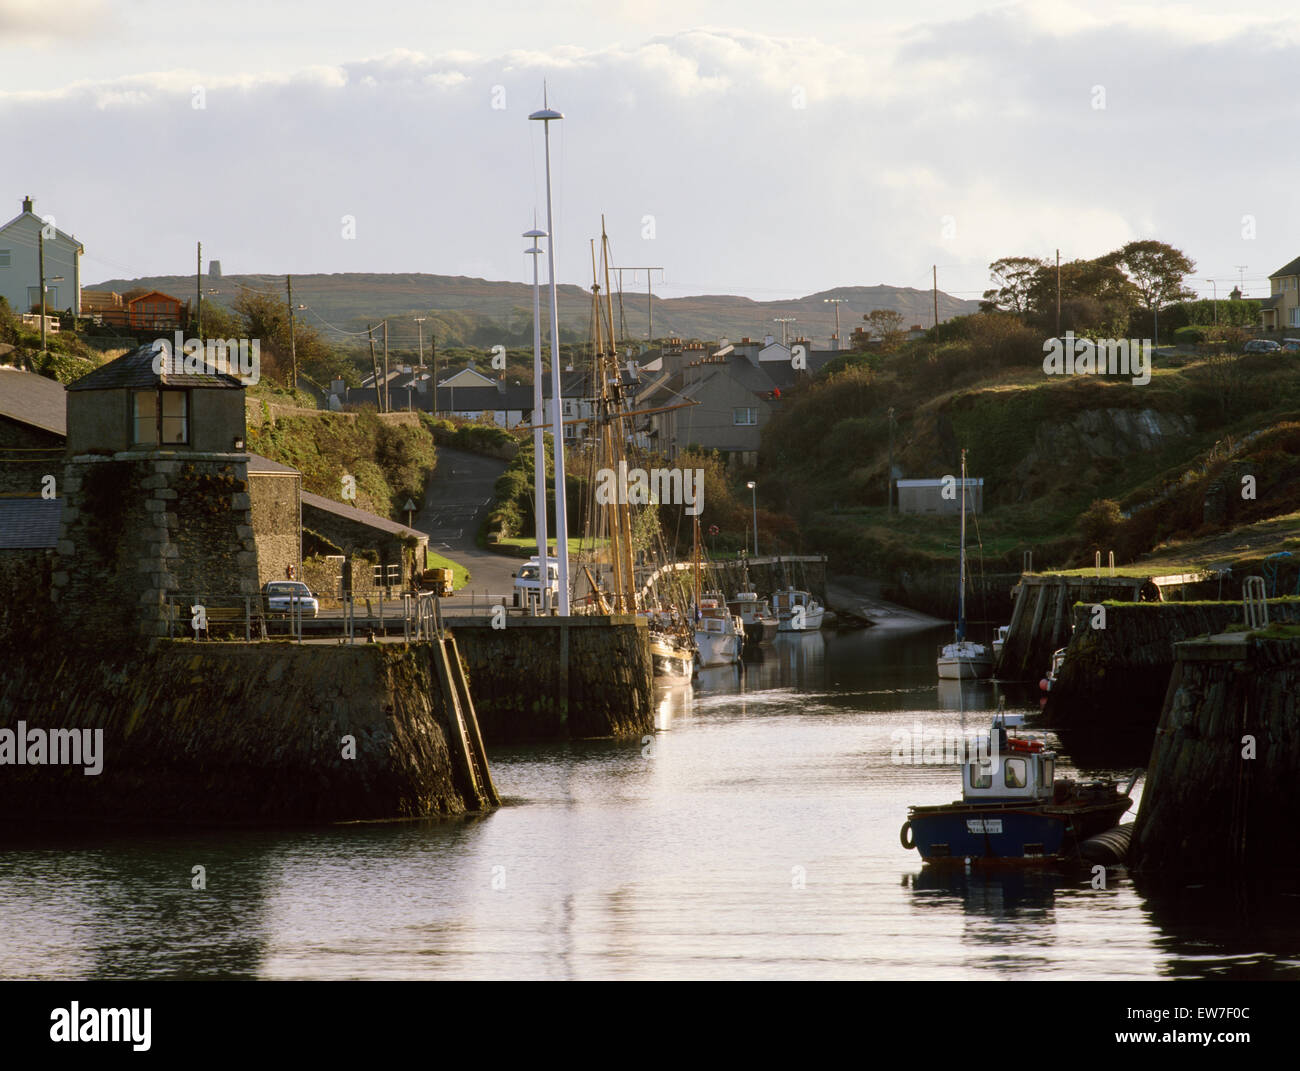 Amlwch Port, Anglesey enlarged & developed from late 1700s to process & export copper & other minerals - Stock Image